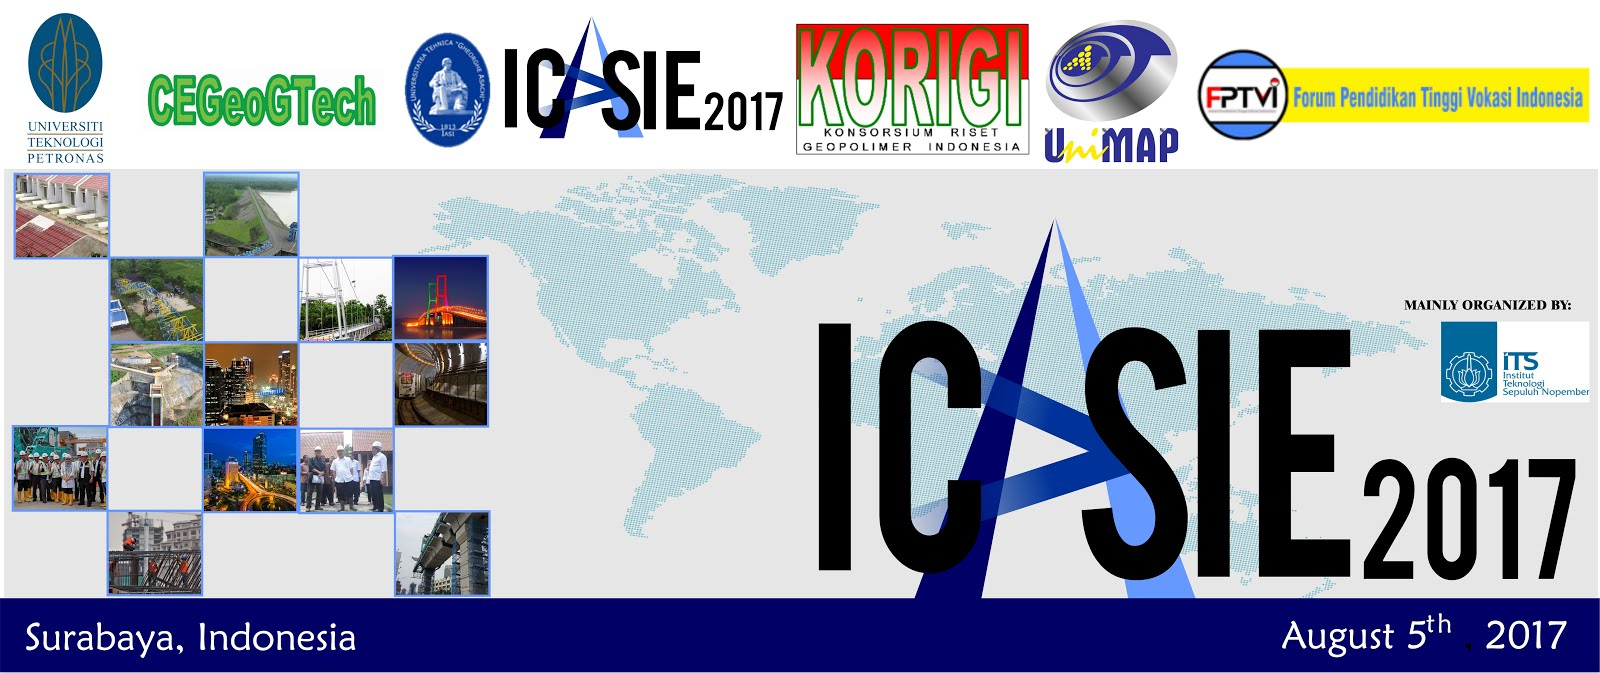 1st International Conference of Applied Science and Technology for Infrastructure Engineering 2017